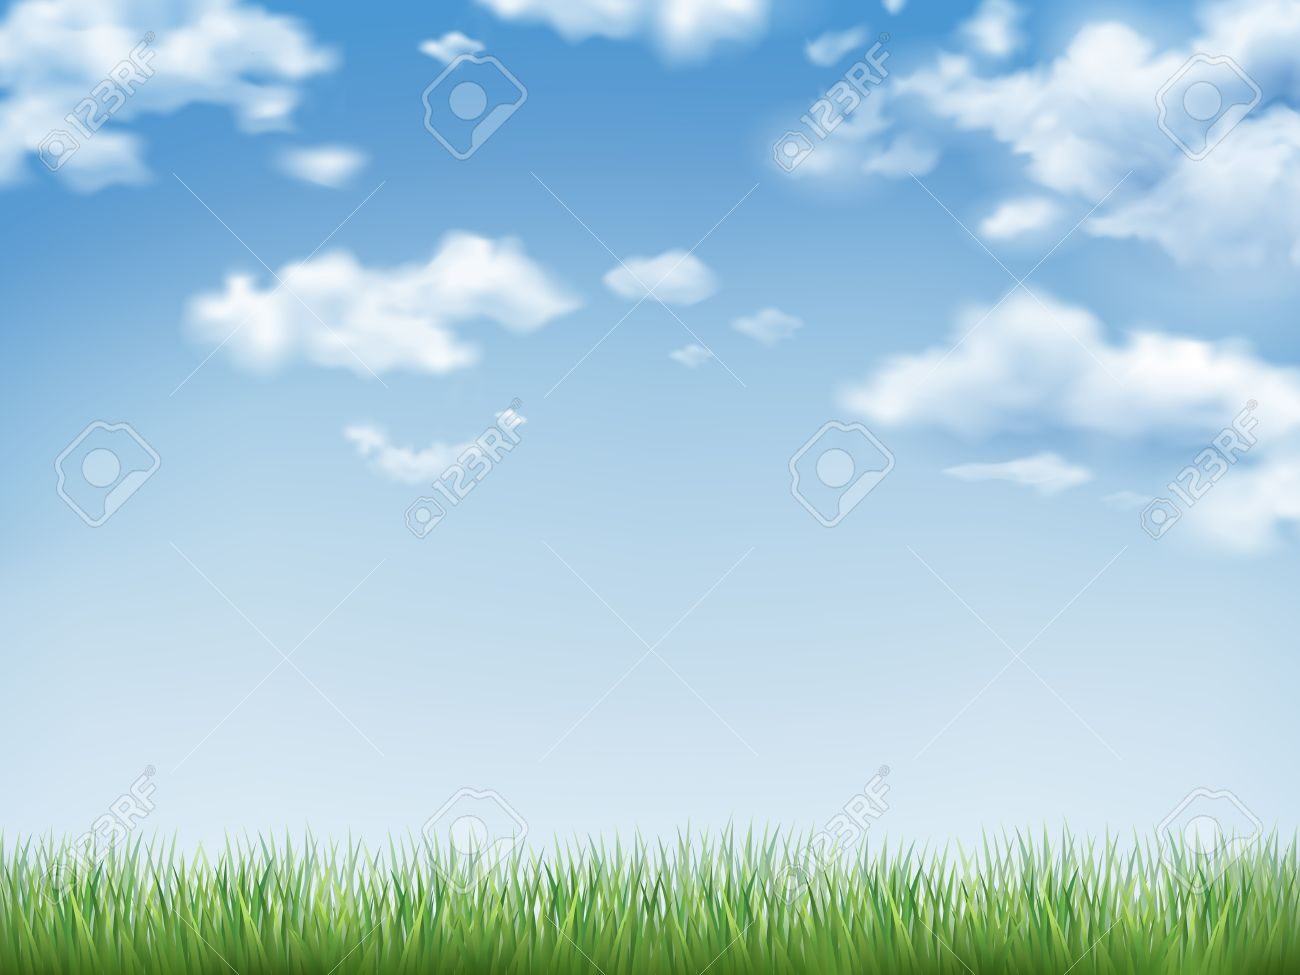 blue sky and field of green grass background royalty free cliparts